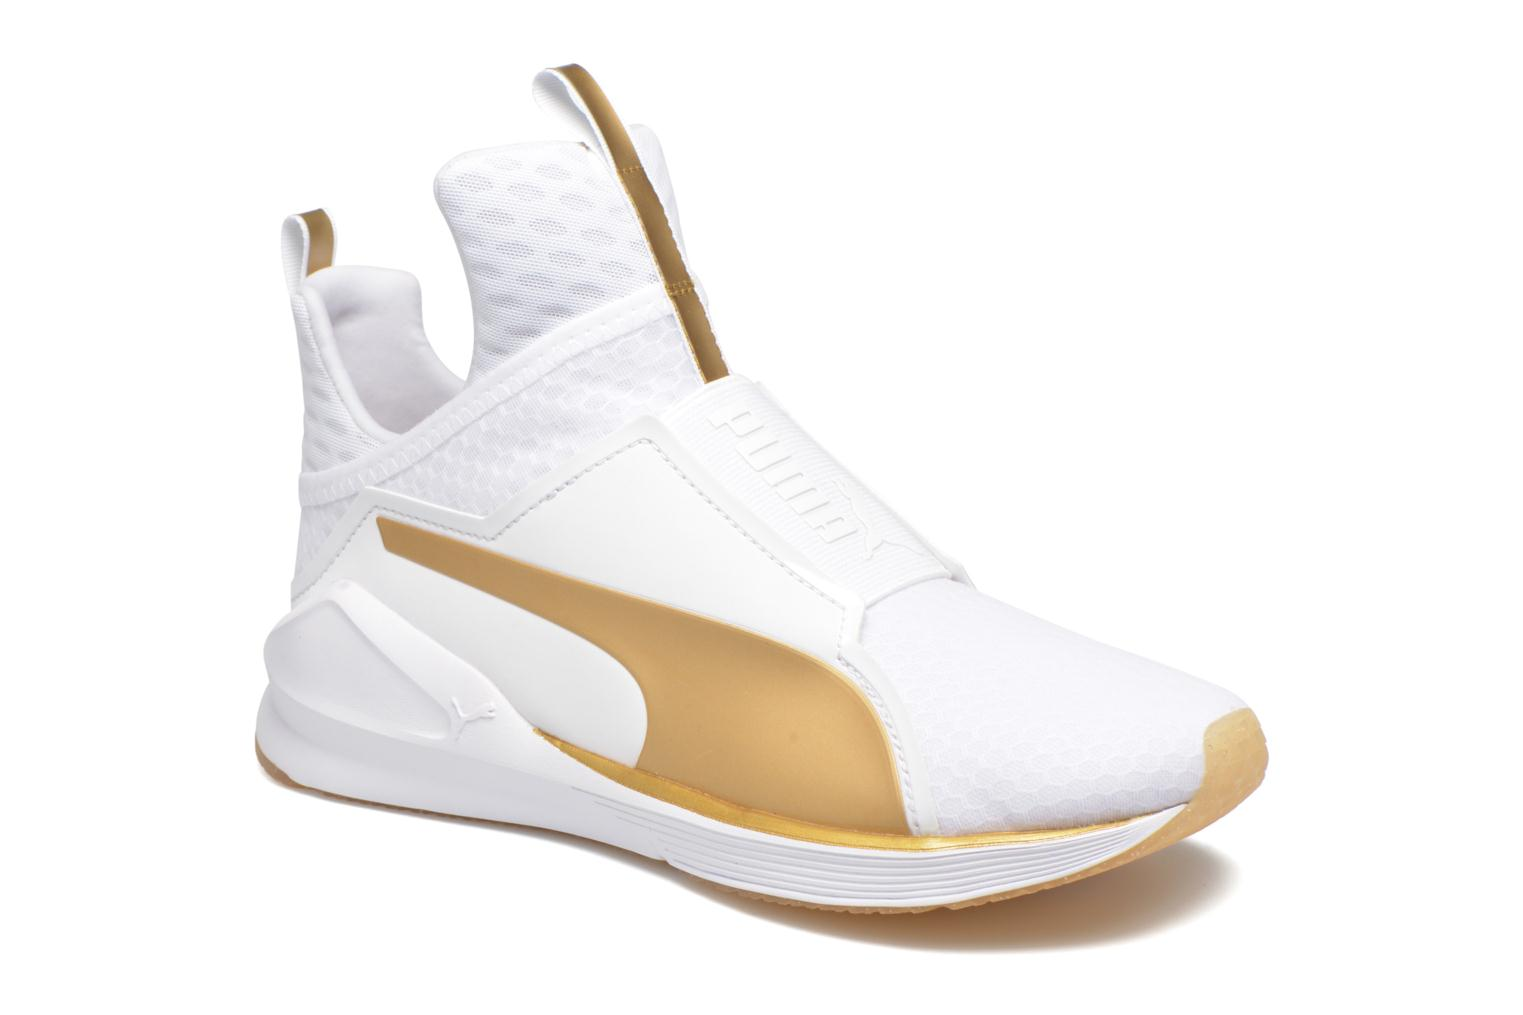 Wns Fierce Gold/White